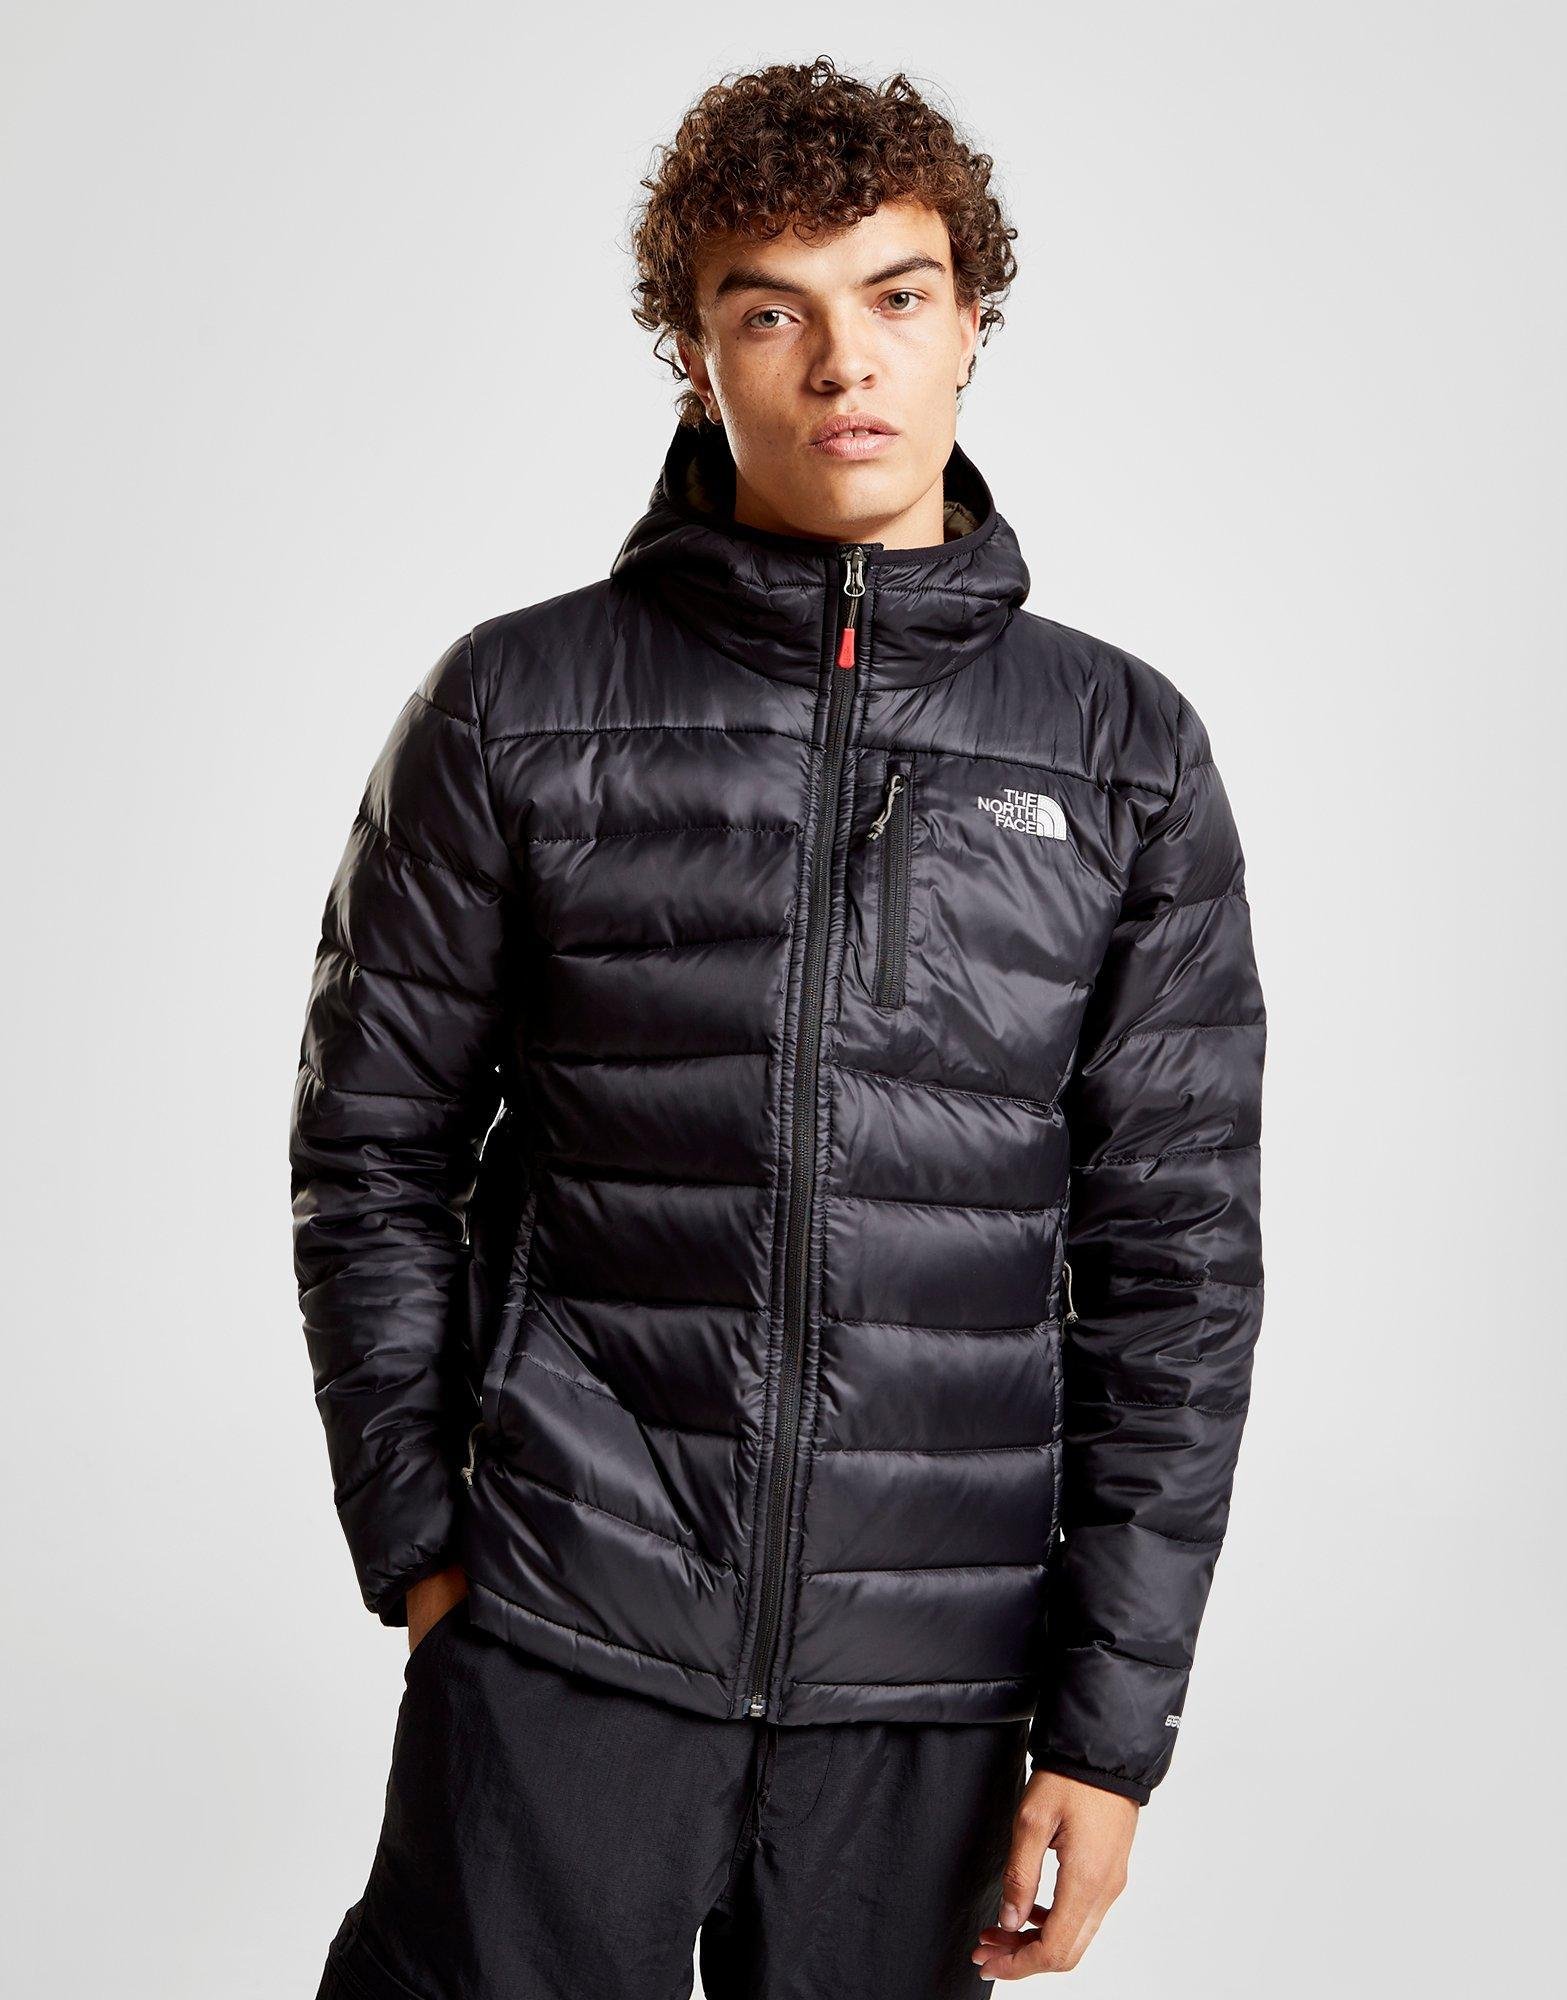 d5ccc3890 italy the north face aconcagua down jacket mens levis a0578 40733